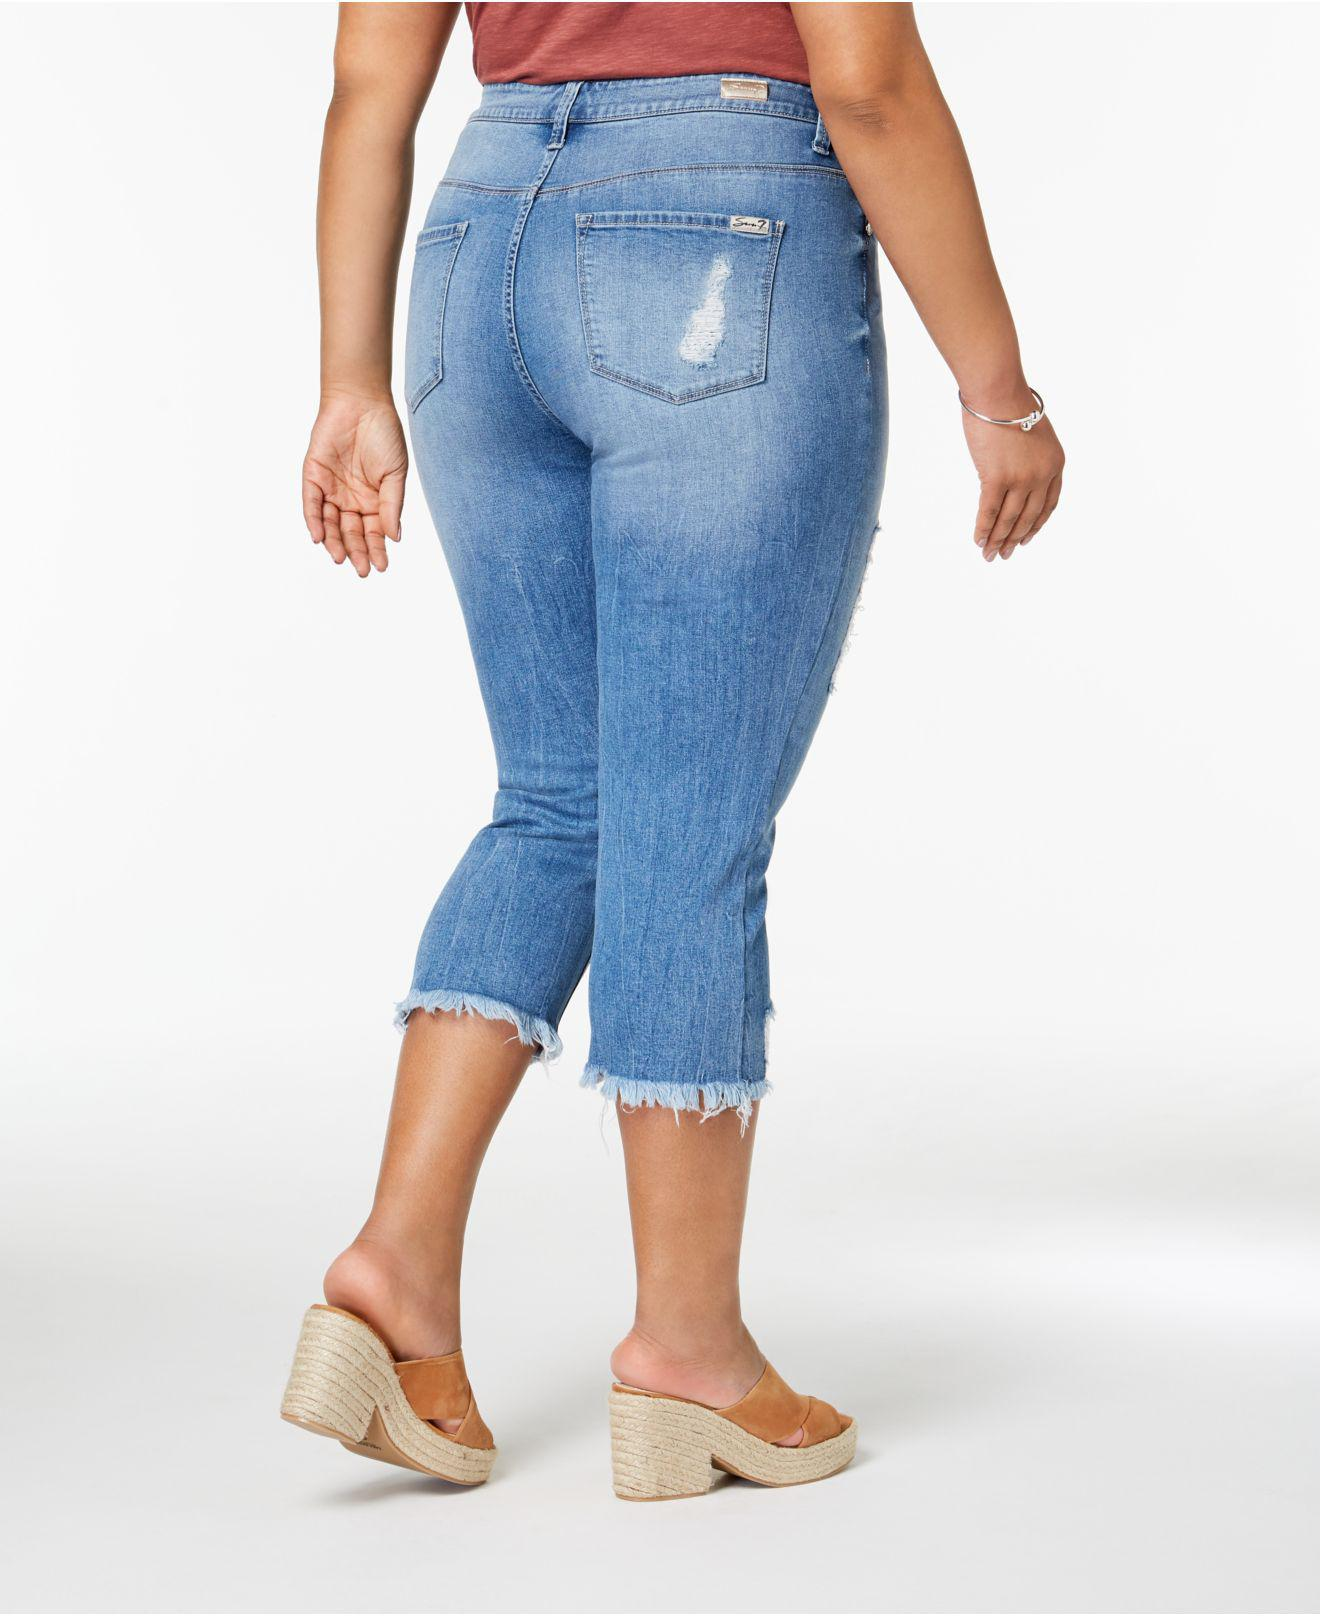 a356a669cc5ef Seven 7 Jeans Plus Size - Jeans Frenchafricana.Org 2018